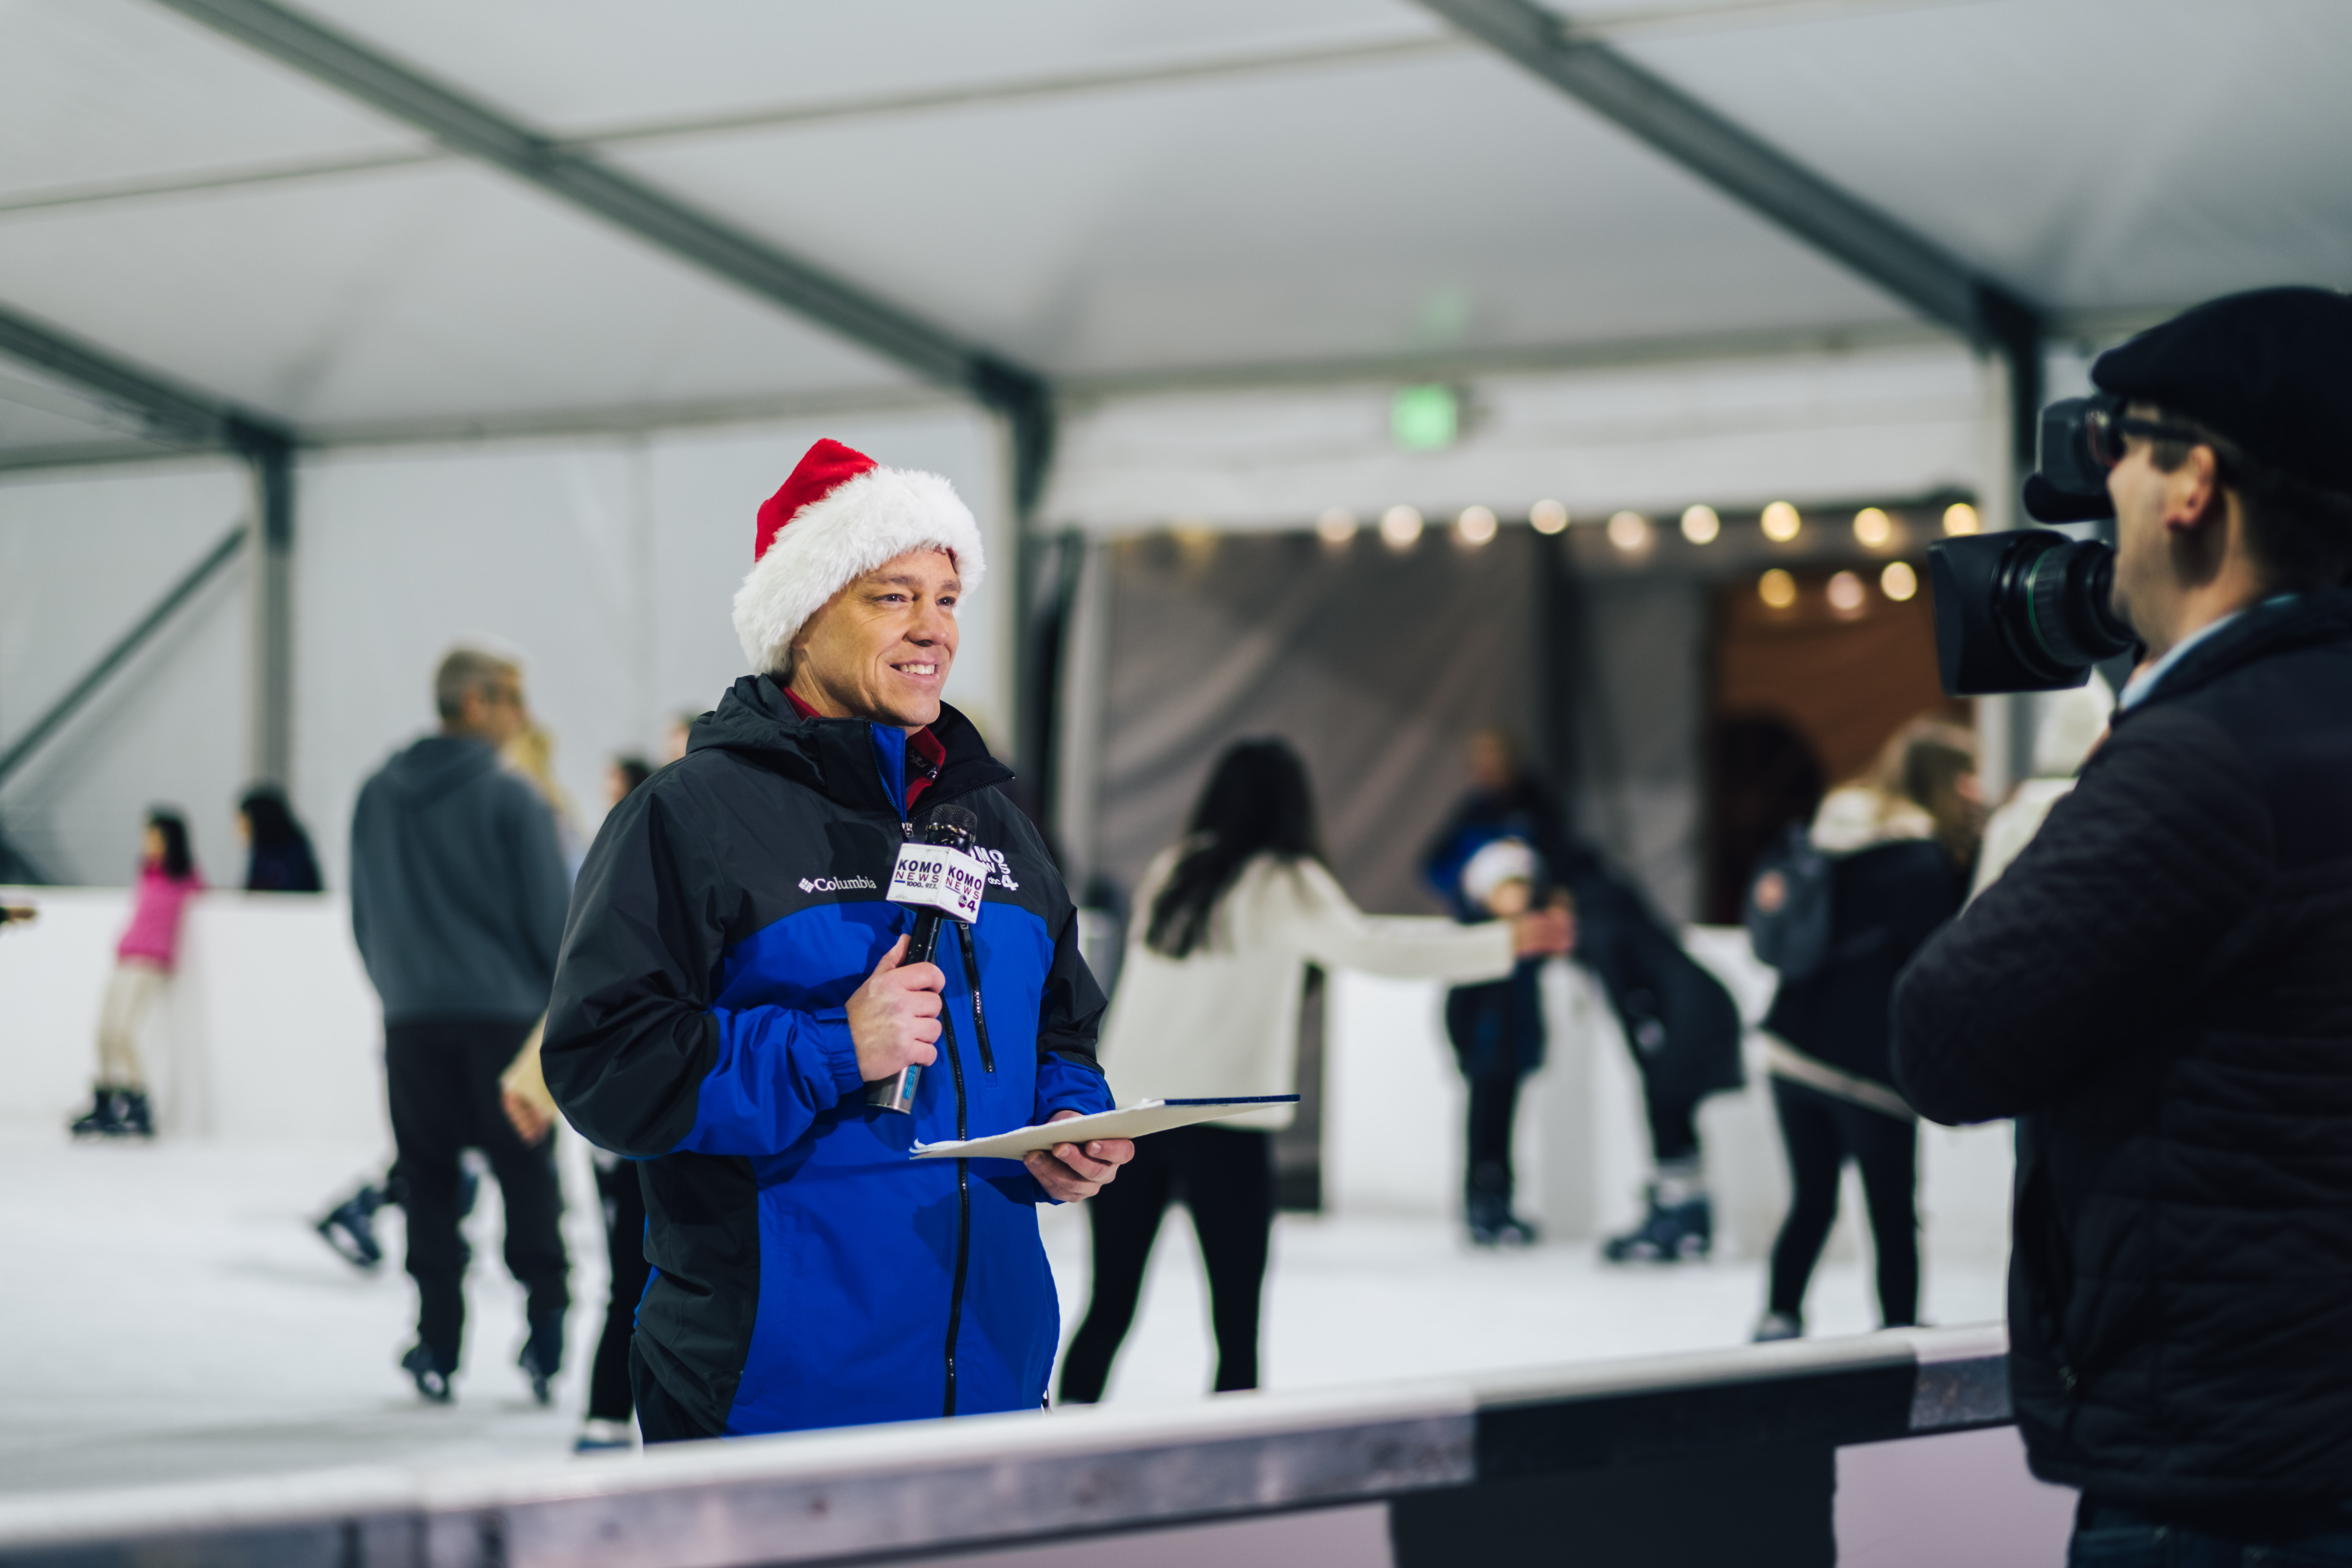 And just like that, STAR 101.5 radio is officially SANTA FM for the season! The flip happened Nov. 30 at the Ice Skating Arena at Bellevue Downtown Park, and if you tune in now through Christmas Day! (Image: Ryan McBoyle / Seattle Refined)